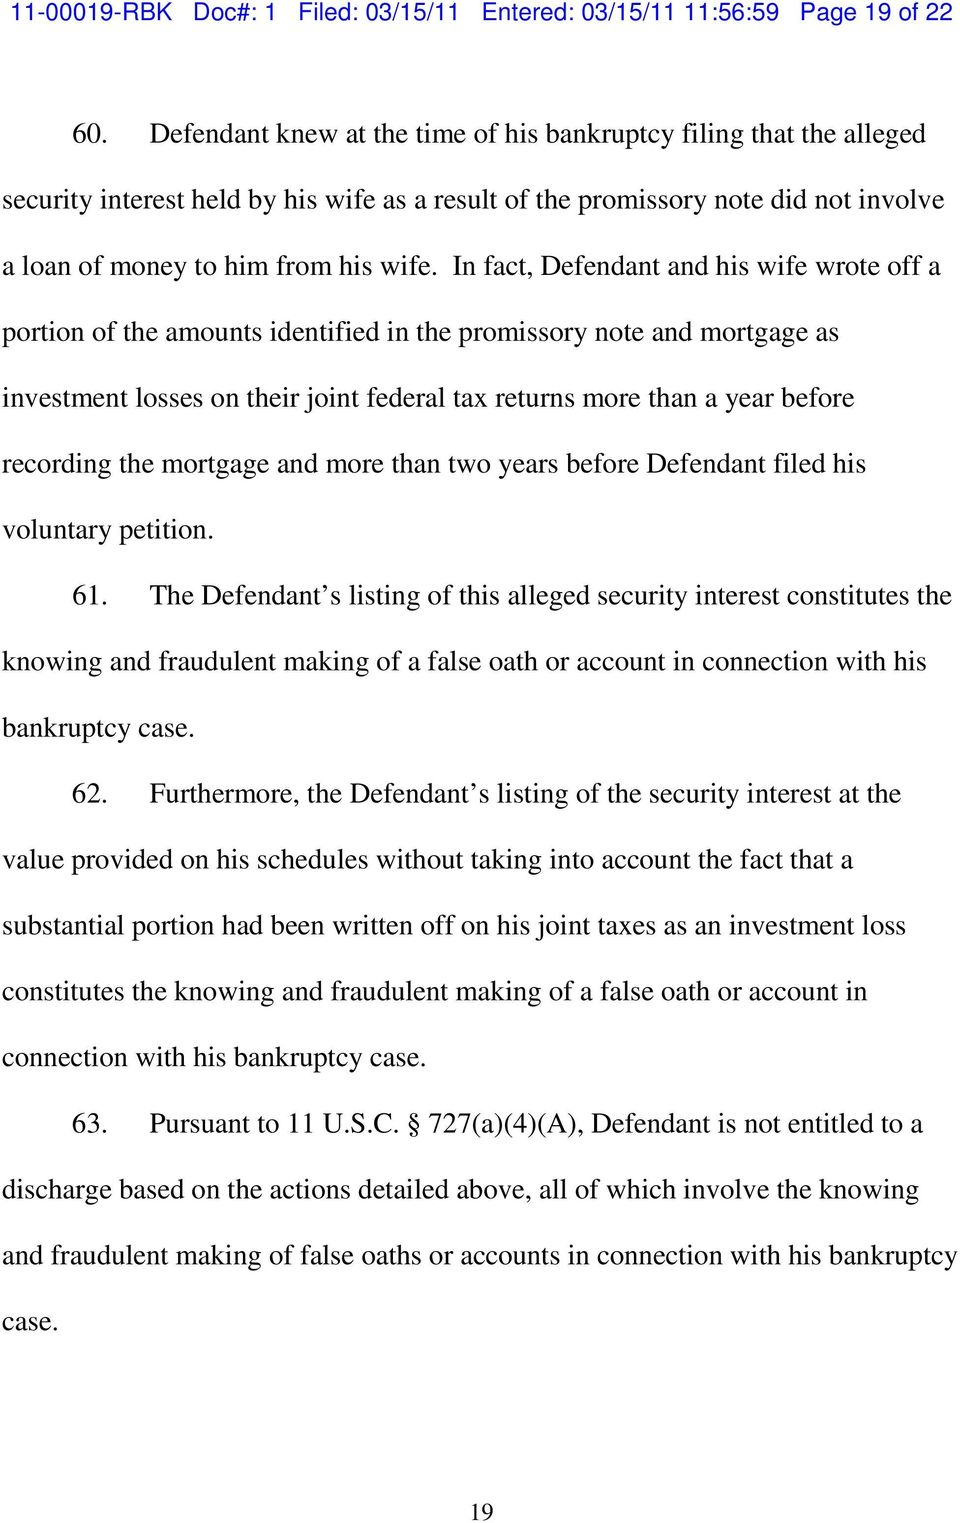 In fact, Defendant and his wife wrote off a portion of the amounts identified in the promissory note and mortgage as investment losses on their joint federal tax returns more than a year before